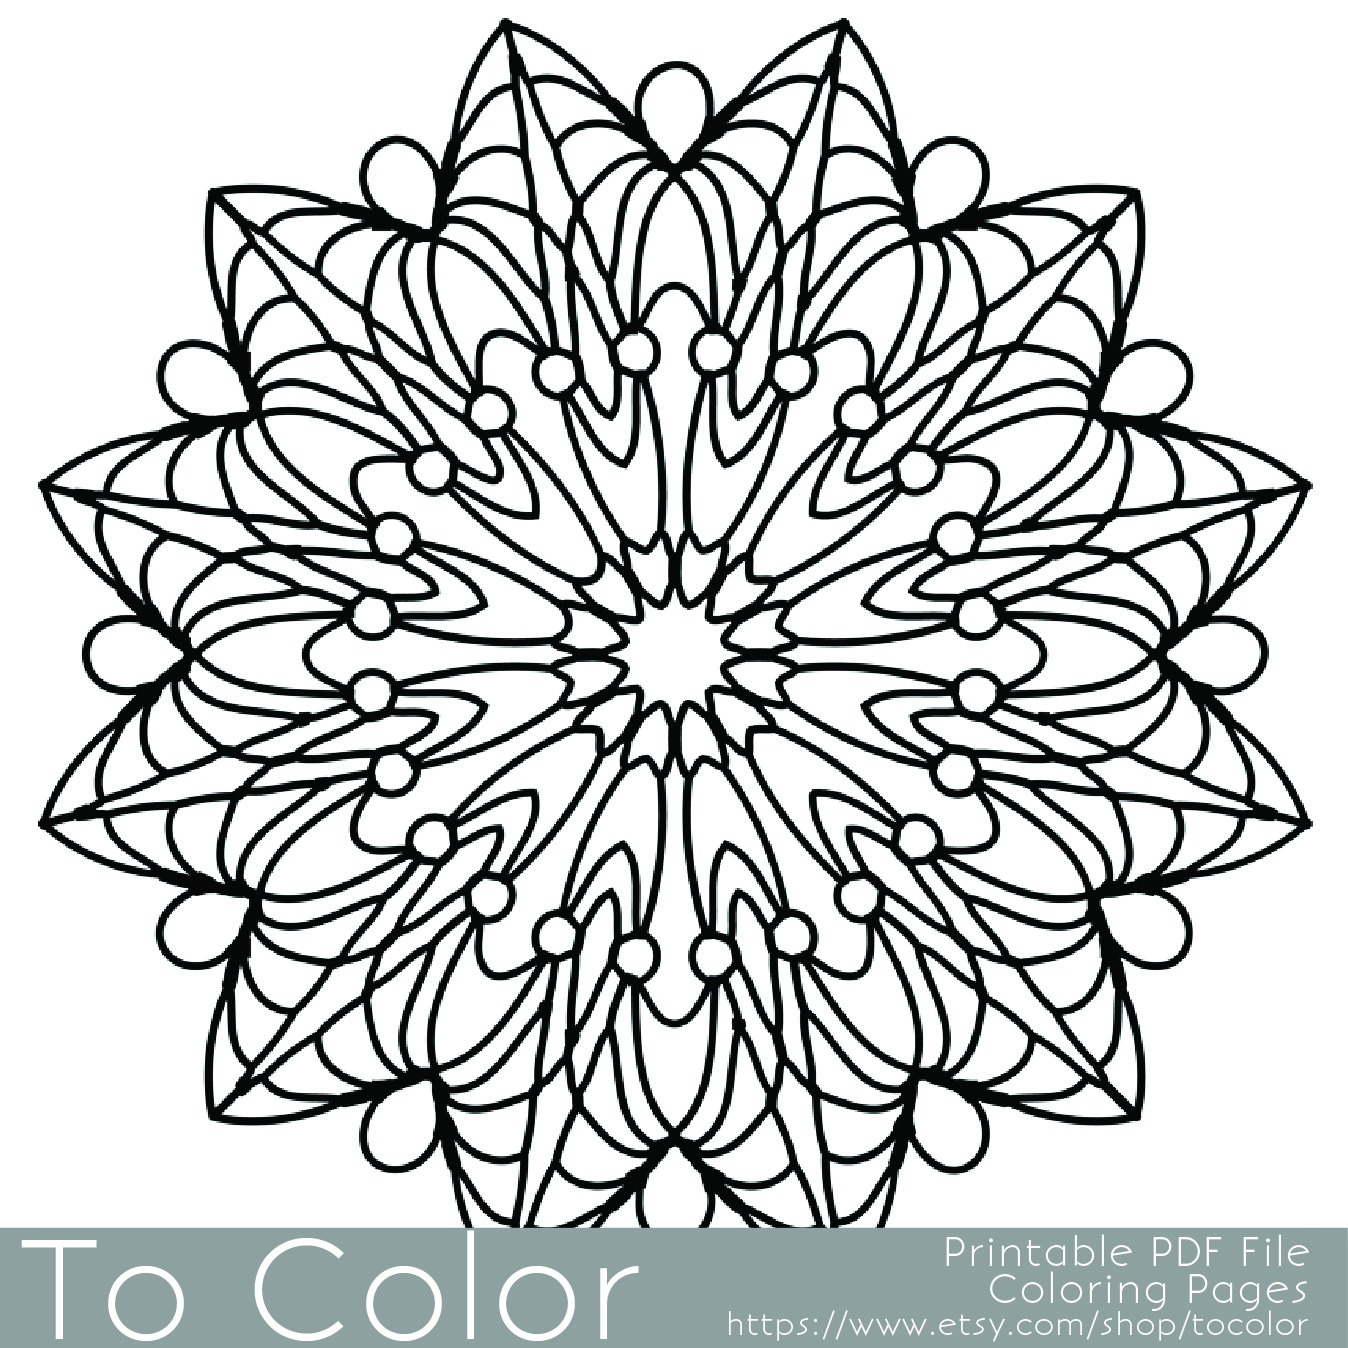 1348x1348 Simple Printable Coloring Pages For Adults, Gel Pens Mandala